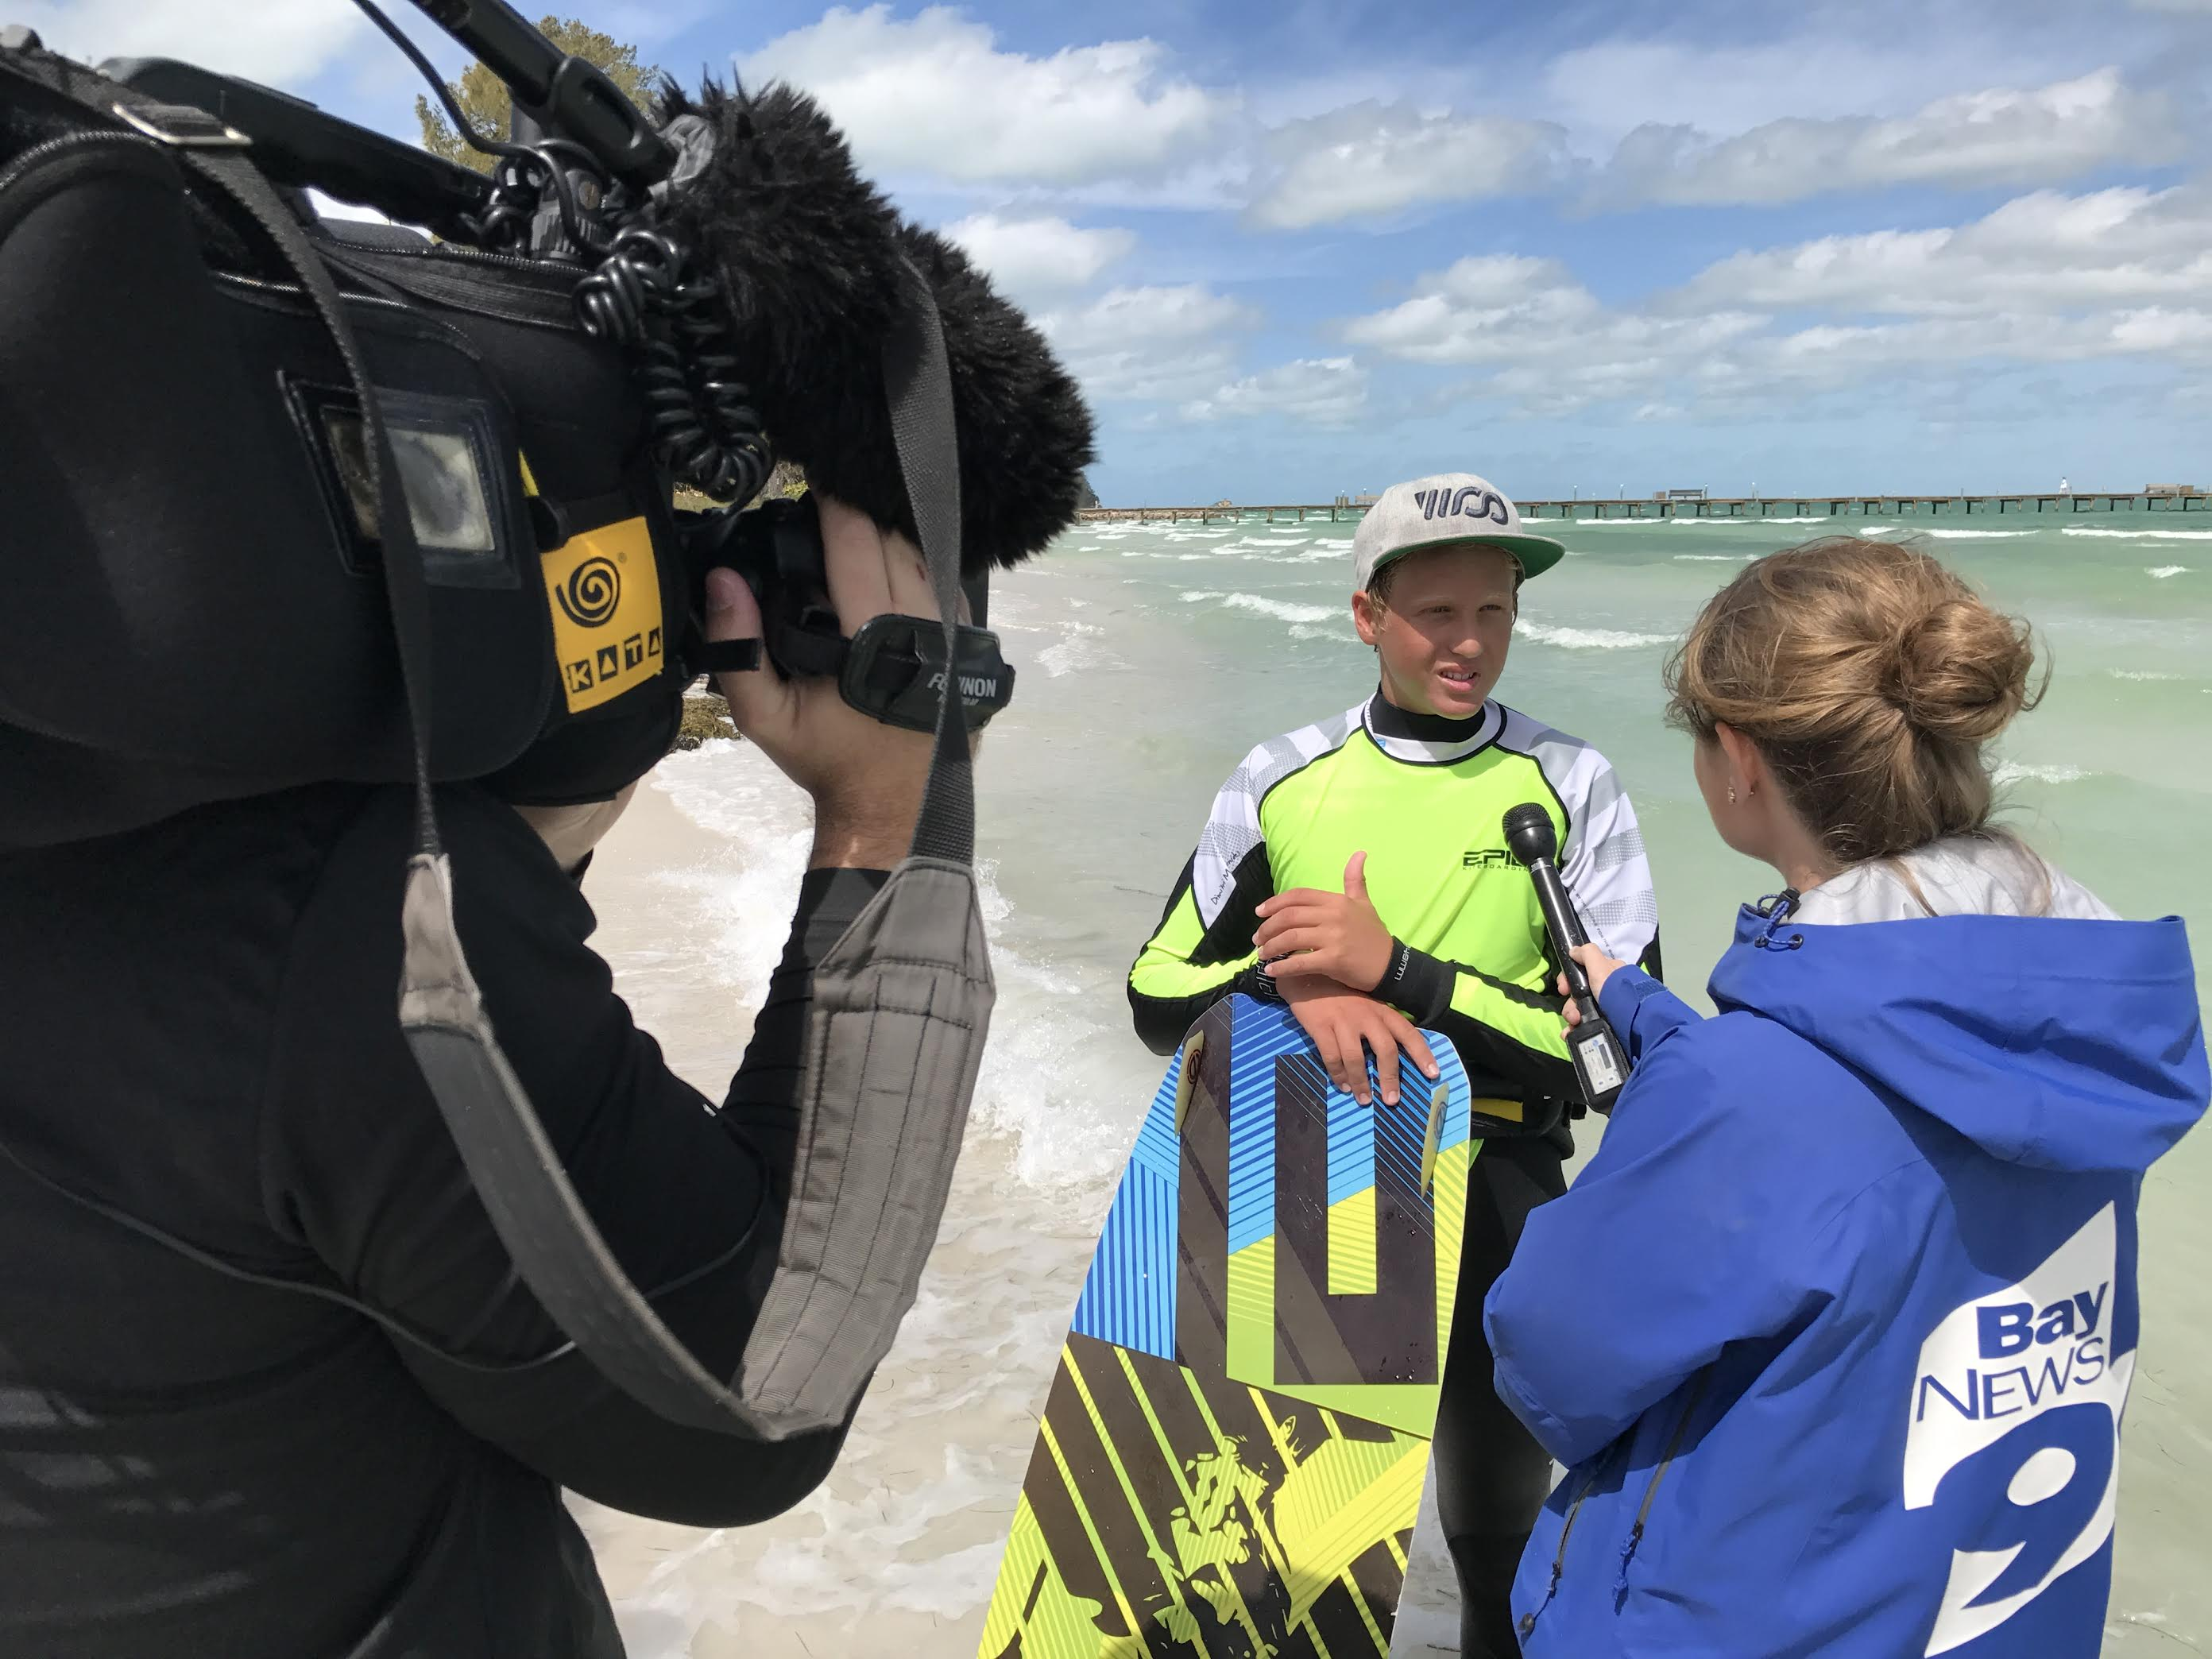 14-year-old shines in professional kiting world